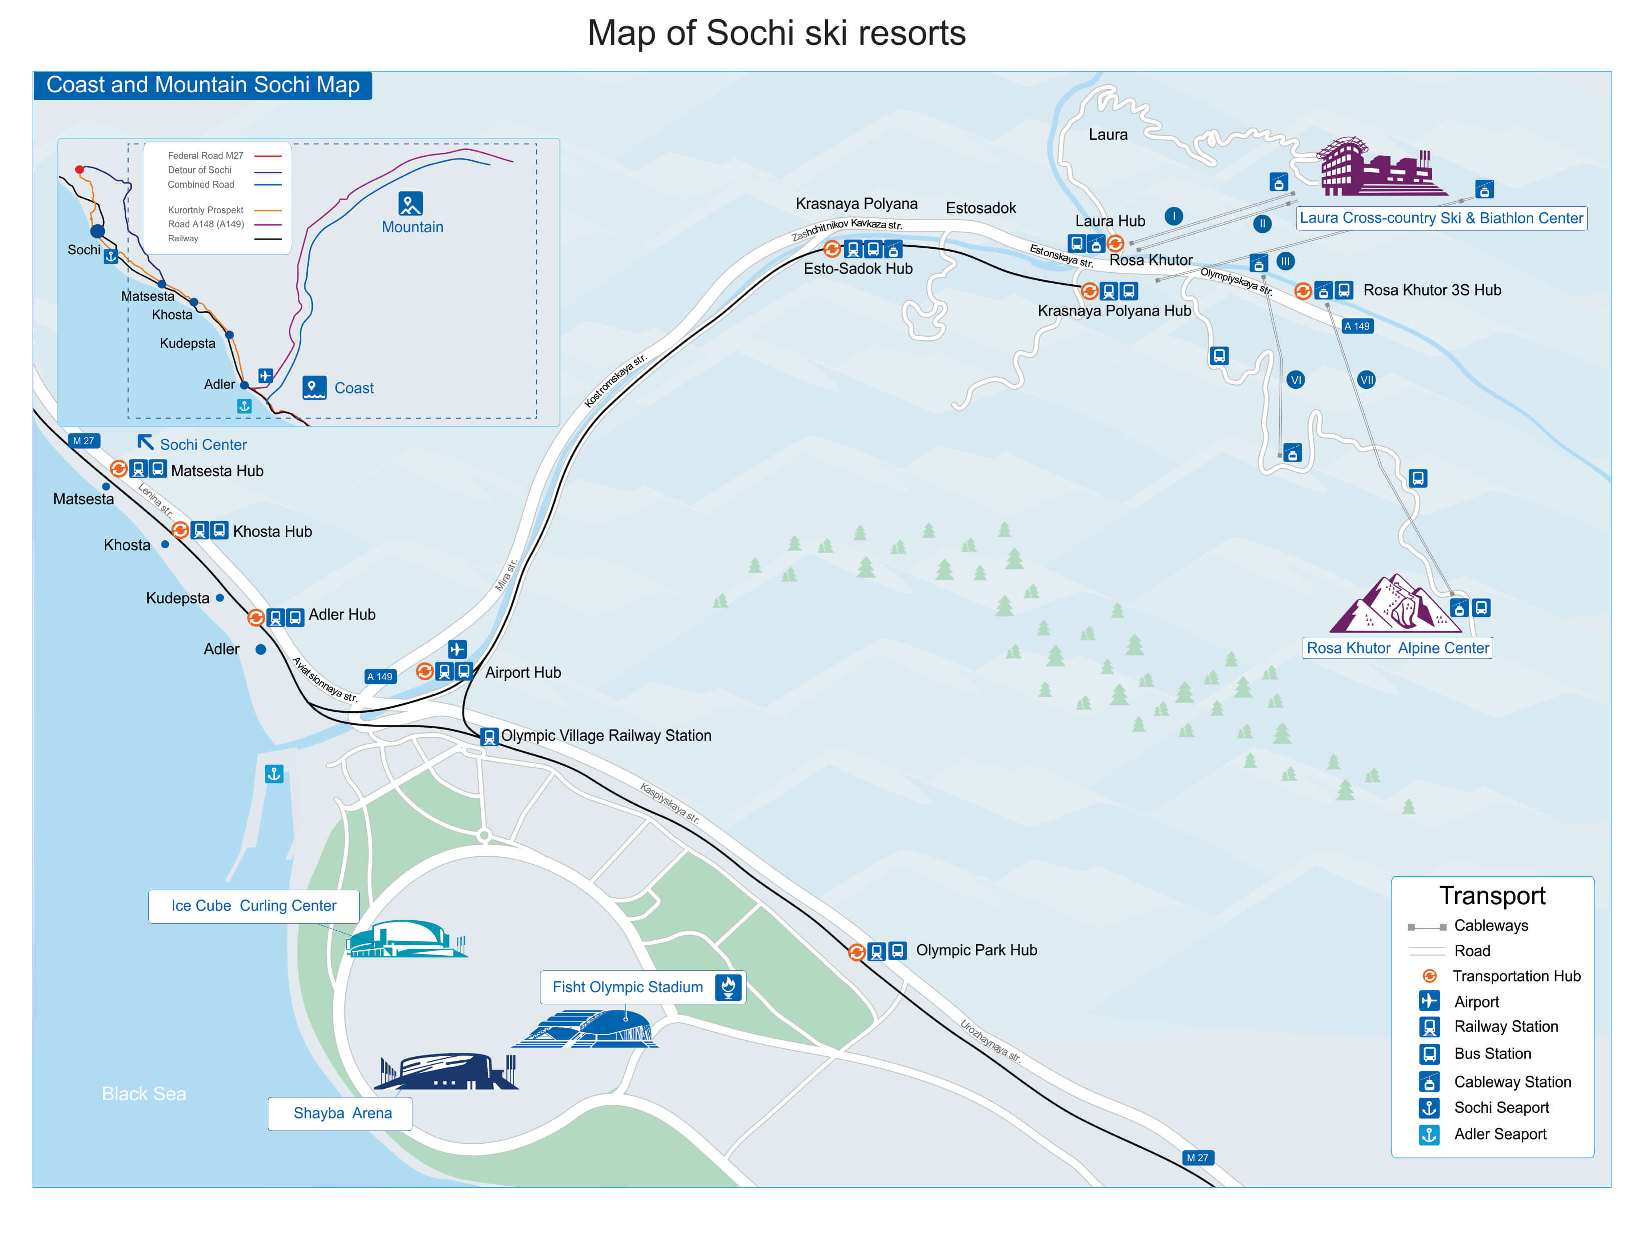 Map of Sochi ski resorts